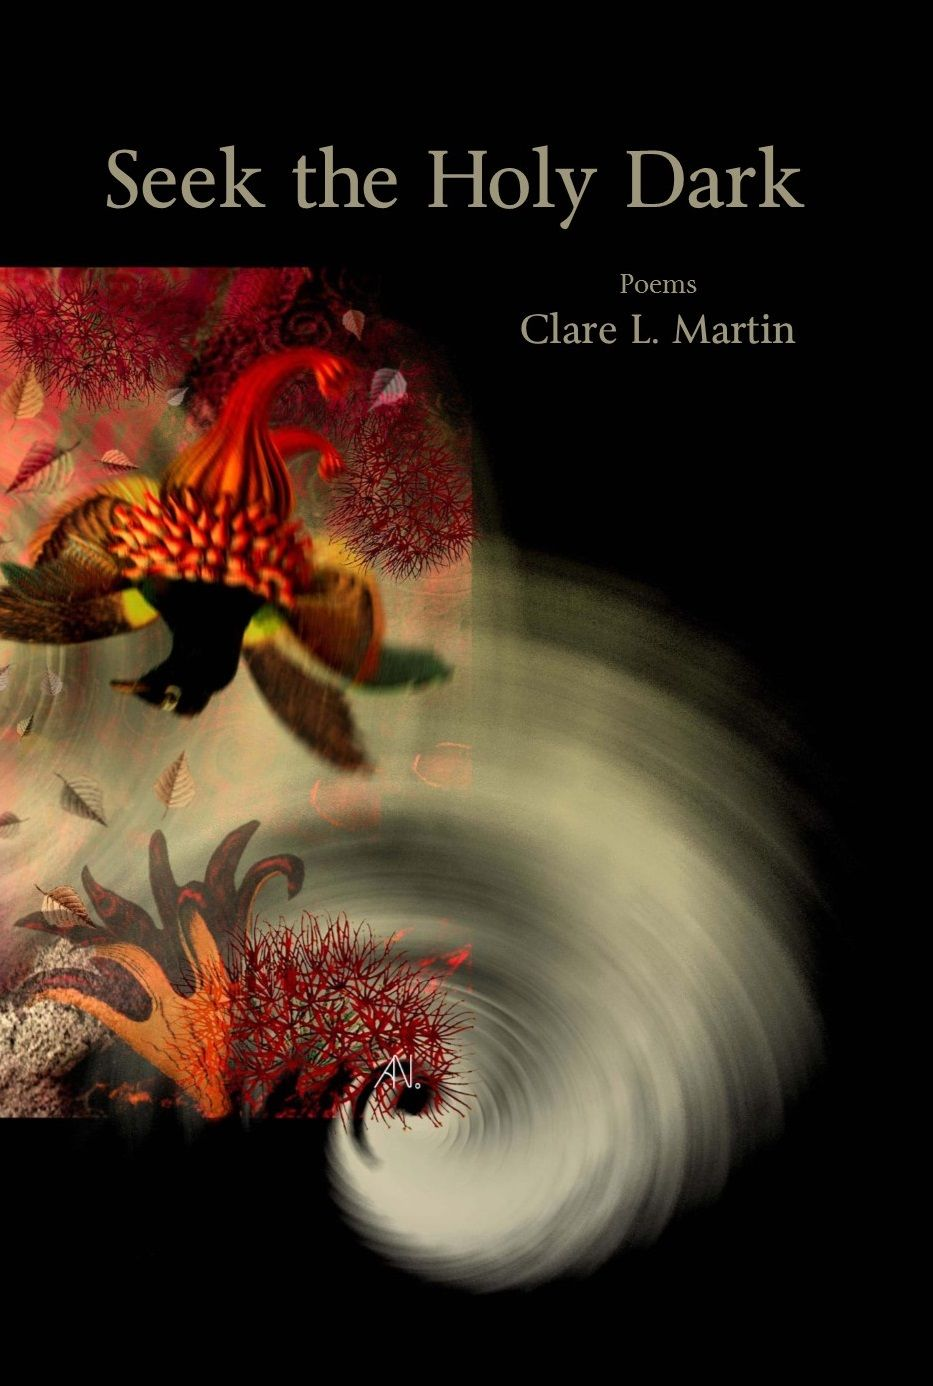 Seek the Holy Dark by Clare L. Martin